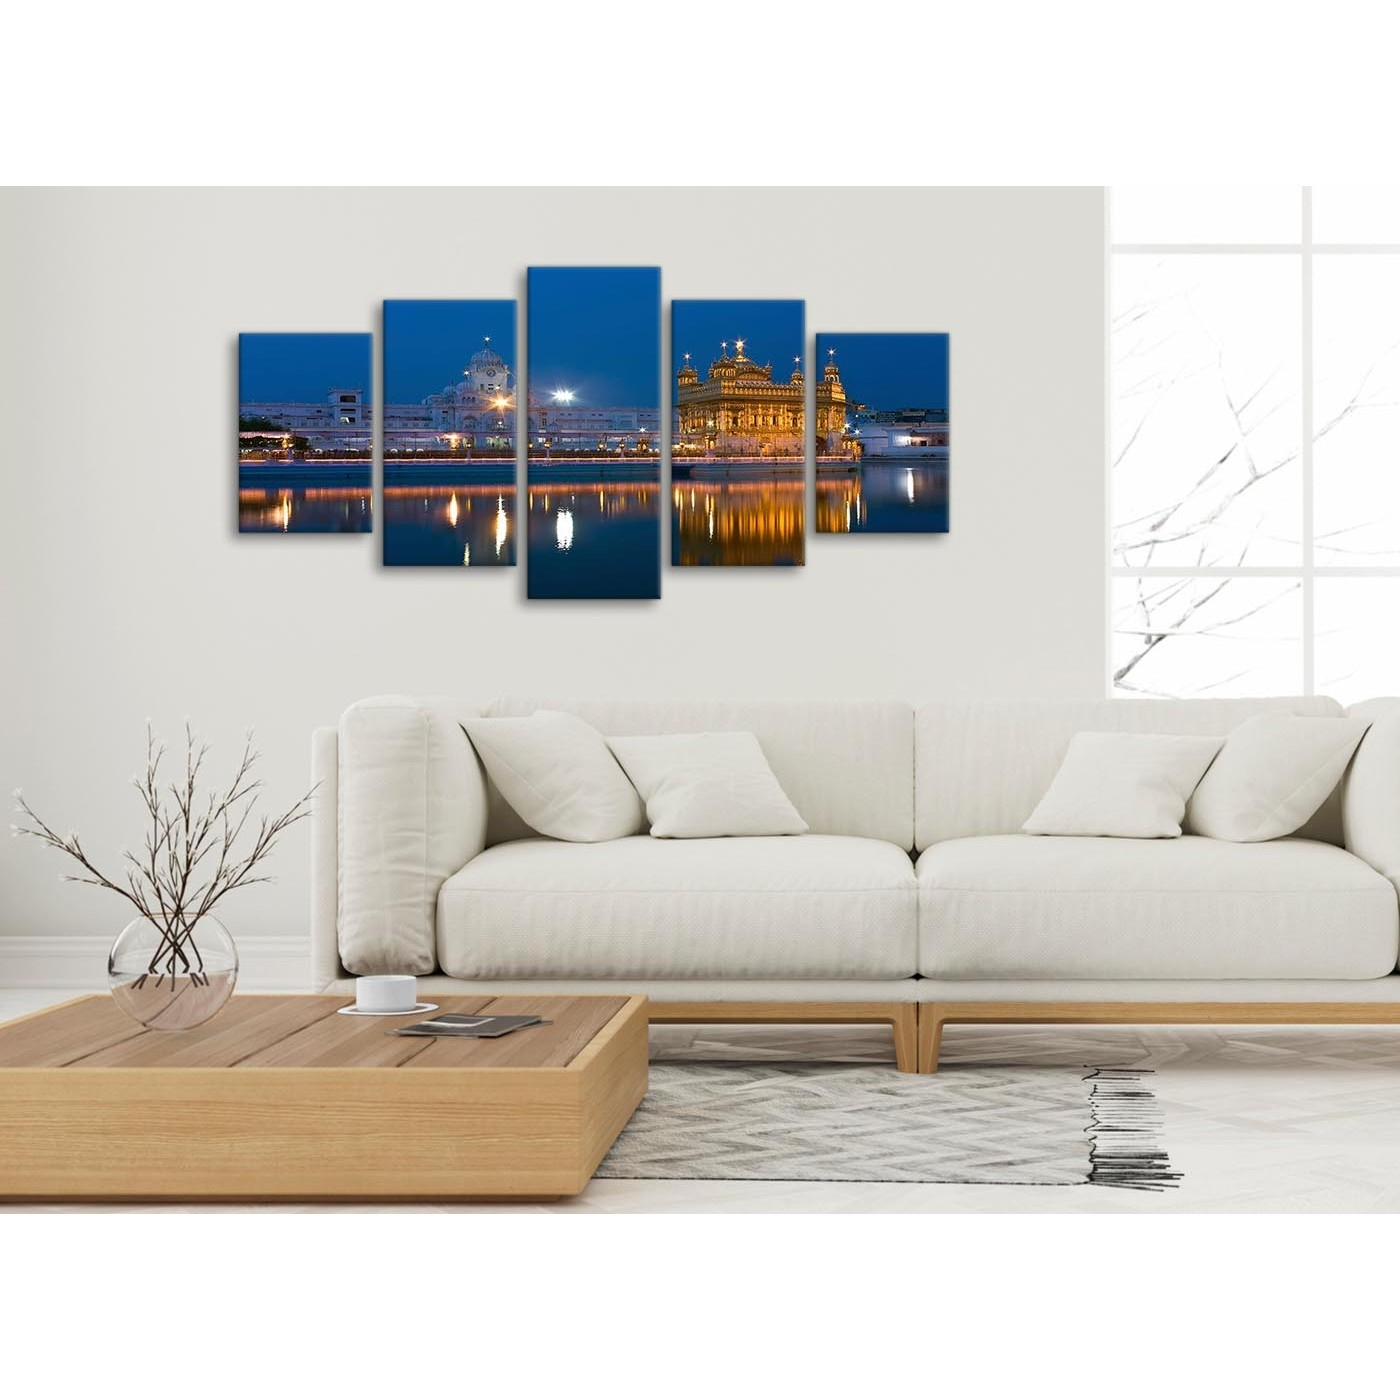 5 Panel Canvas Wall Art Pictures – Sikh Golden Temple Amritsar Intended For Most Current 5 Piece Wall Art (View 13 of 20)